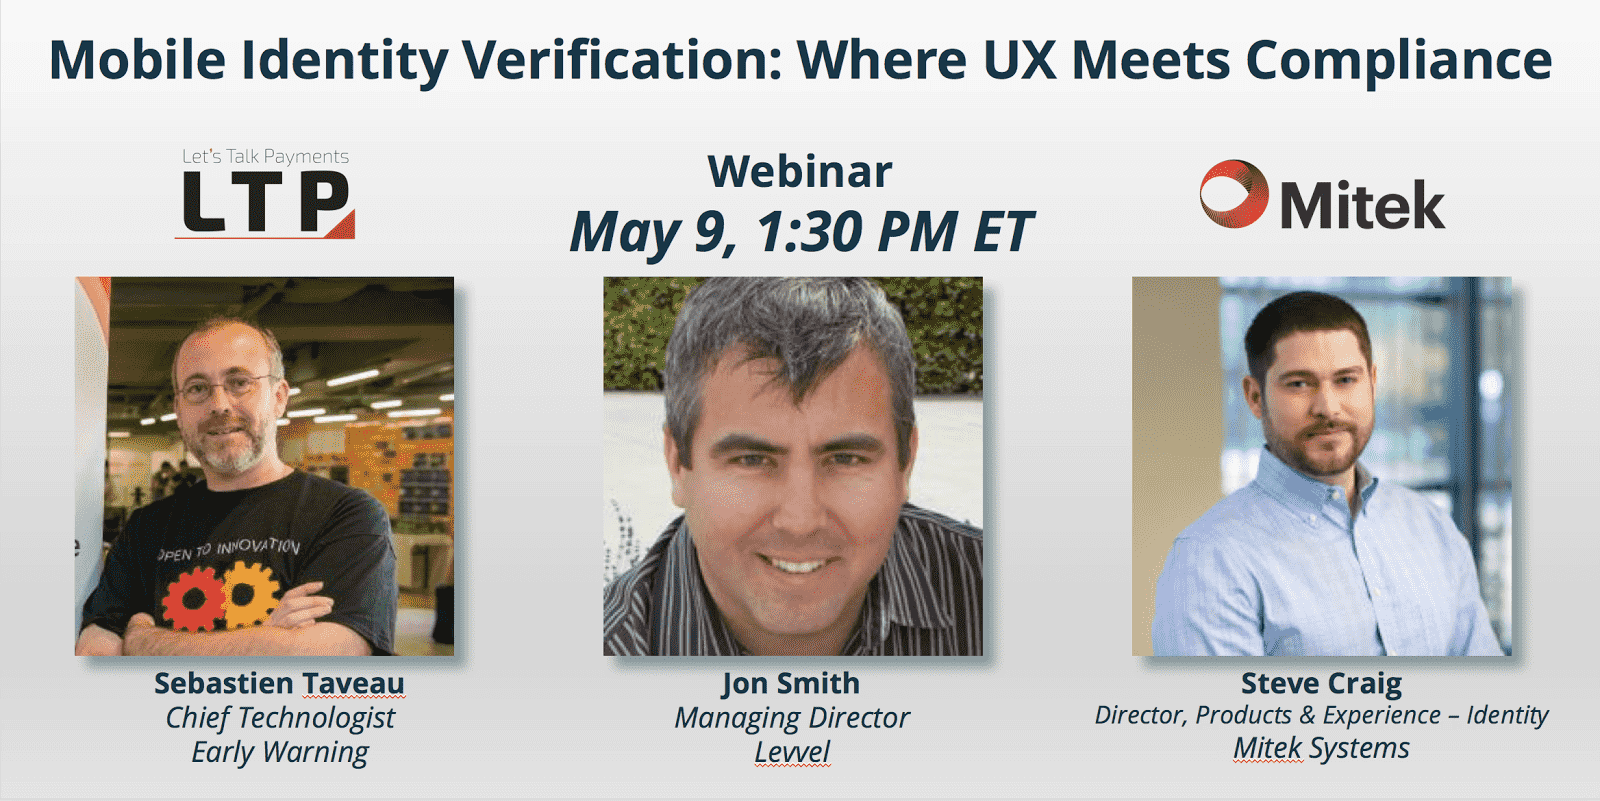 Webinar: Mobile Identity Verification – Where UX Meets Compliance